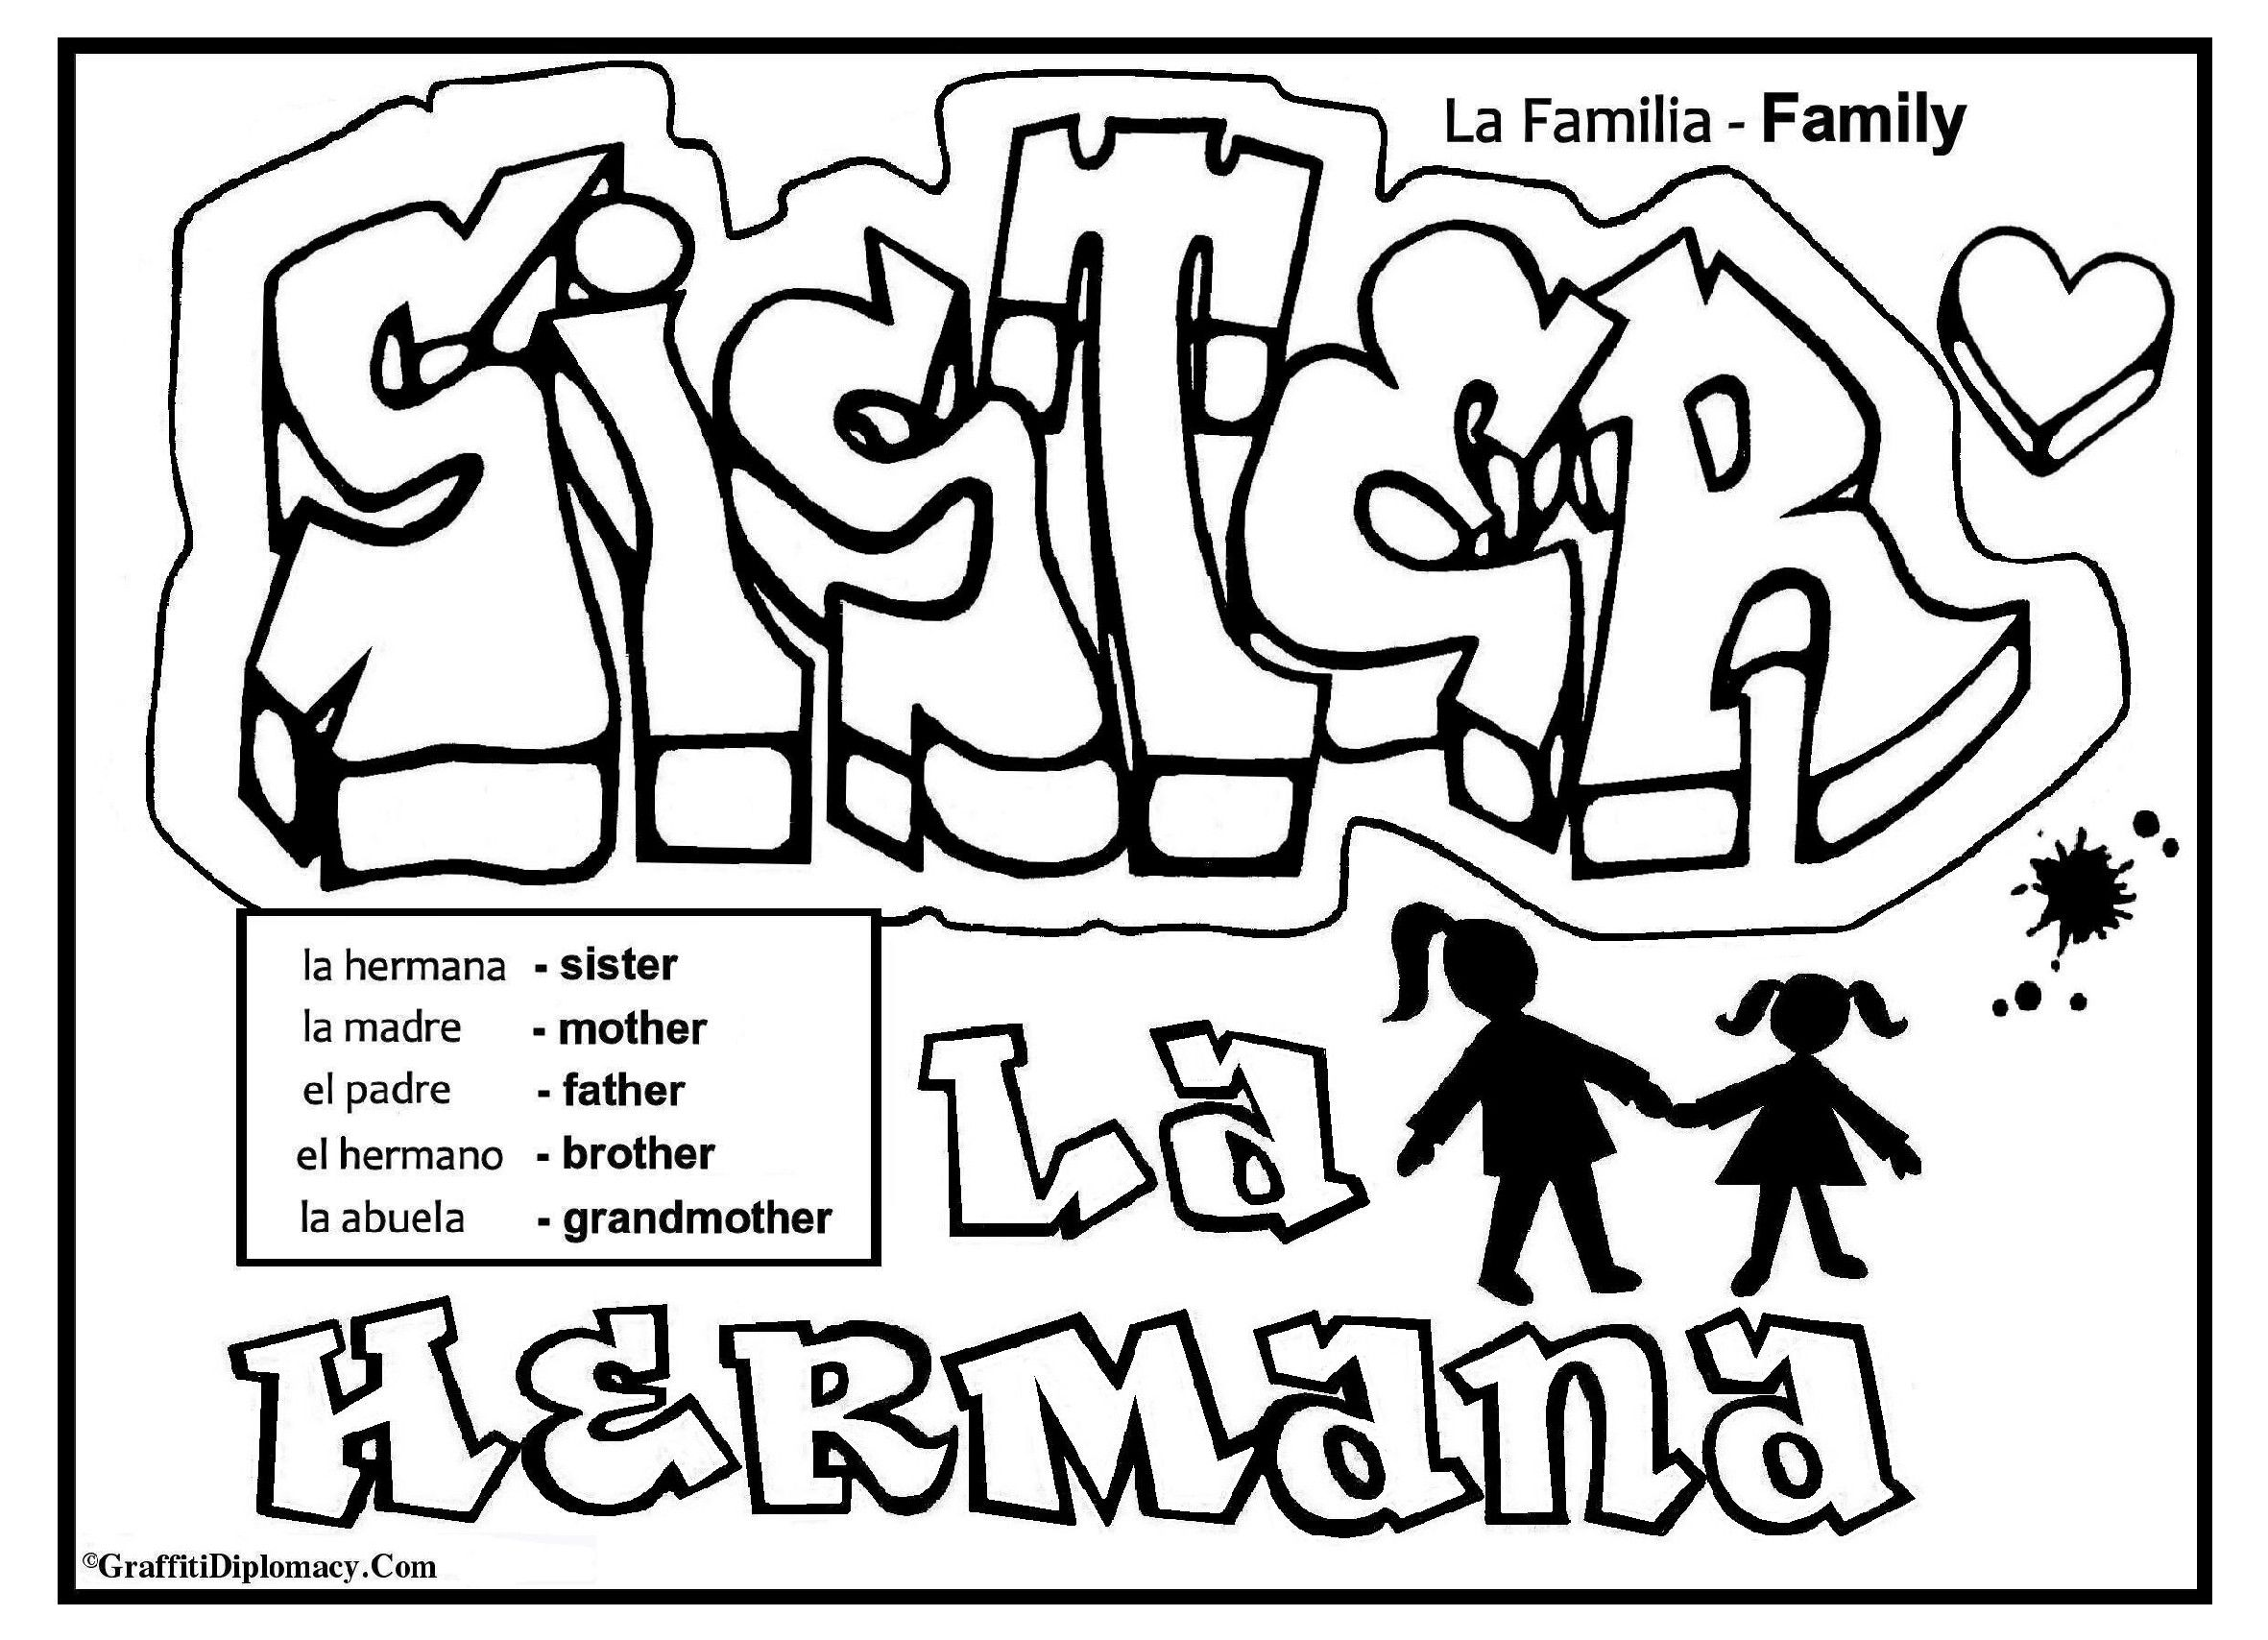 english spanish free printable graffiti coloring page, family - la